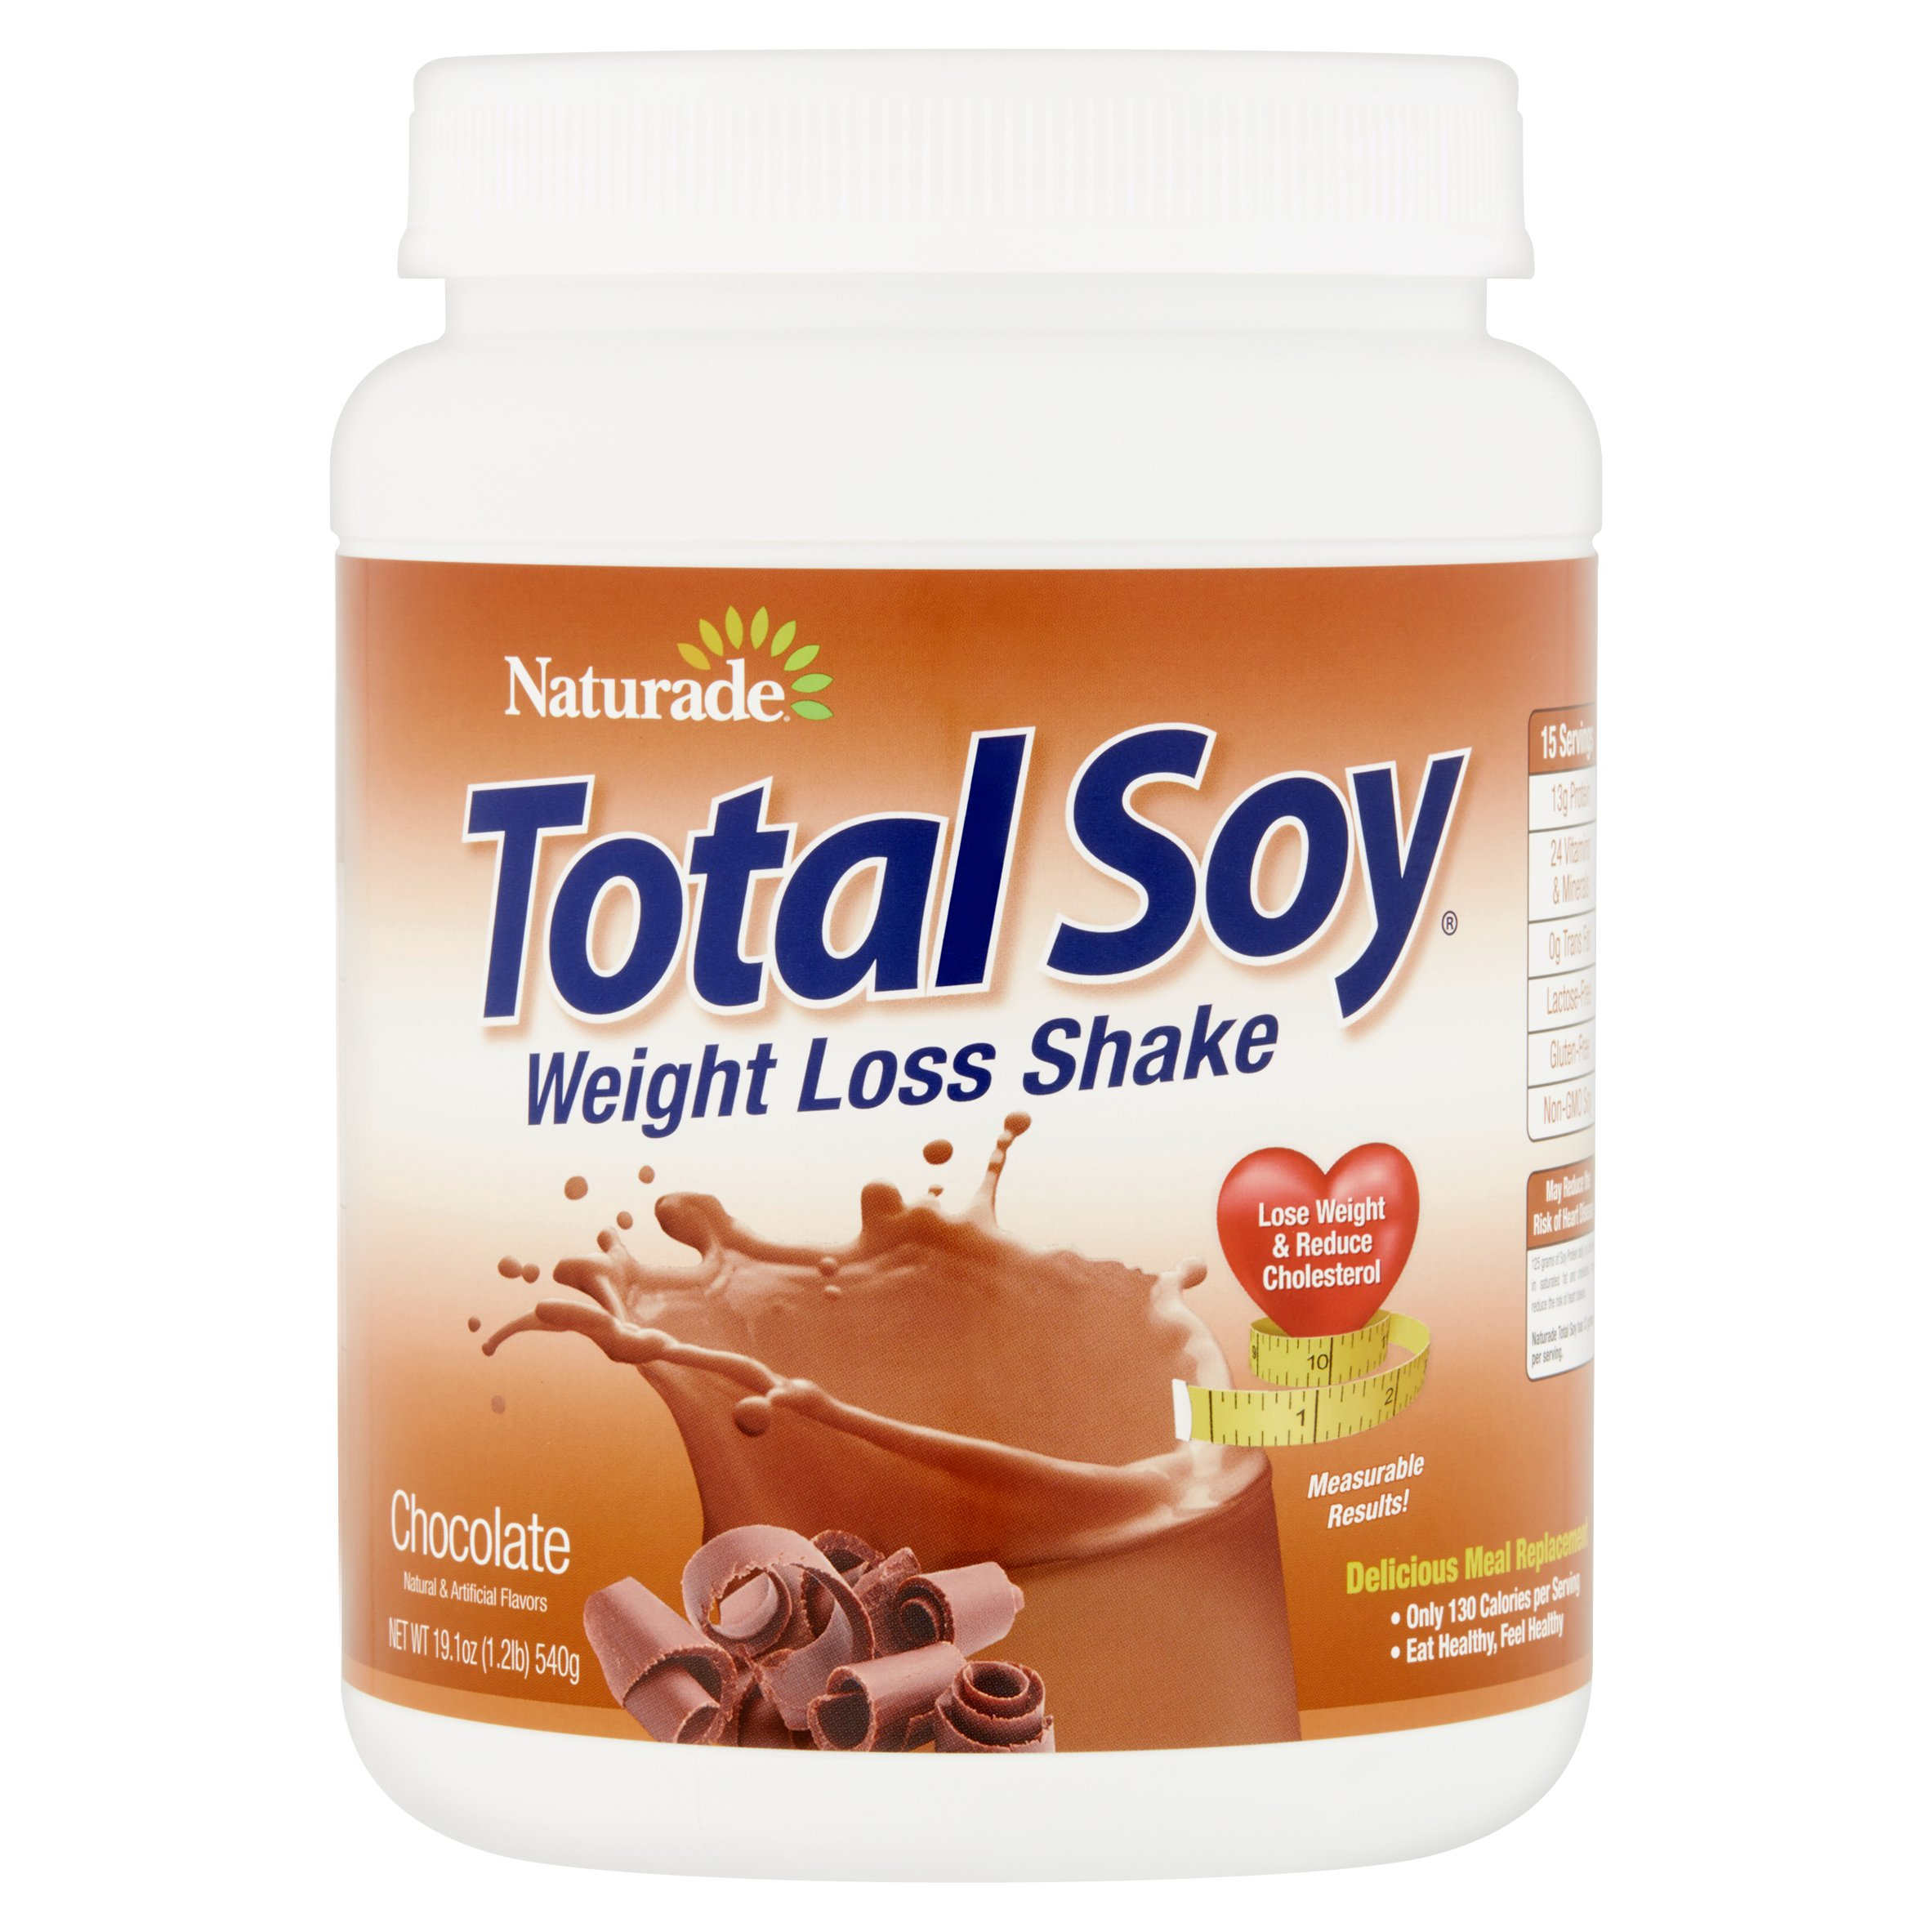 Naturade Total Soy Chocolate Meal Replacement, 19.05 oz